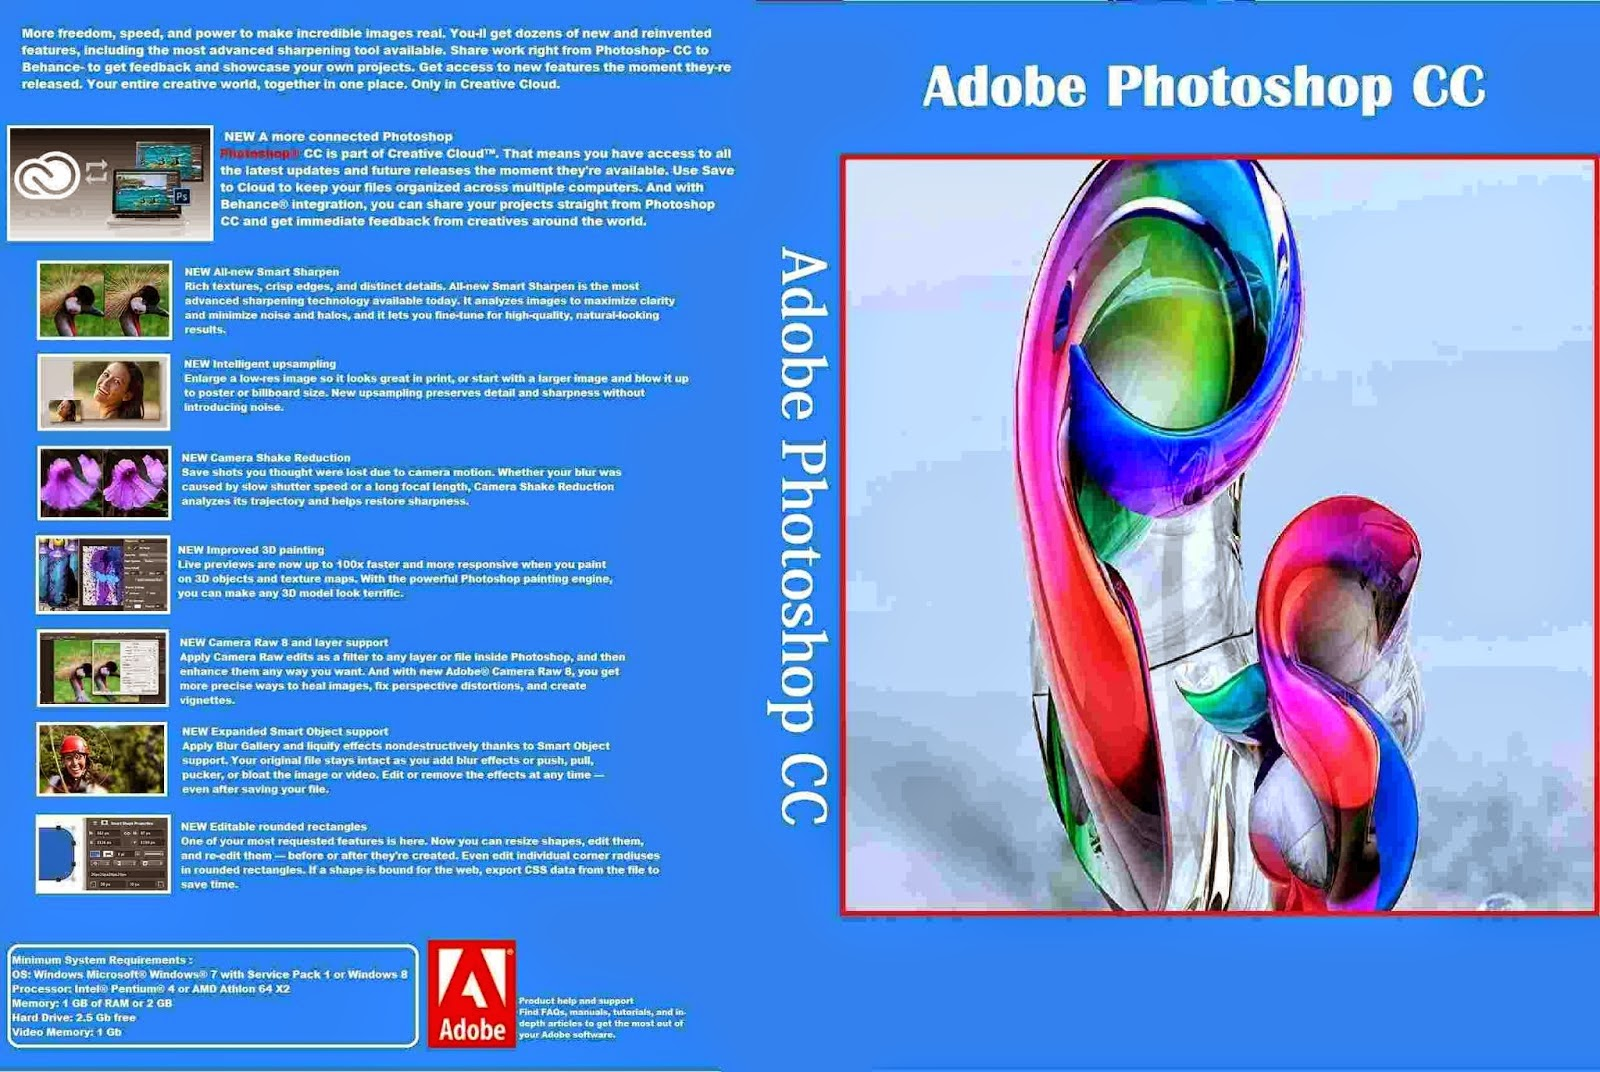 Download Adobe Photoshop CC 15.2.2 x64/x86 PT-BR Adobe 2BPhotoshop 2BCC 2B  2BCapa 2BPC 2BSoftware